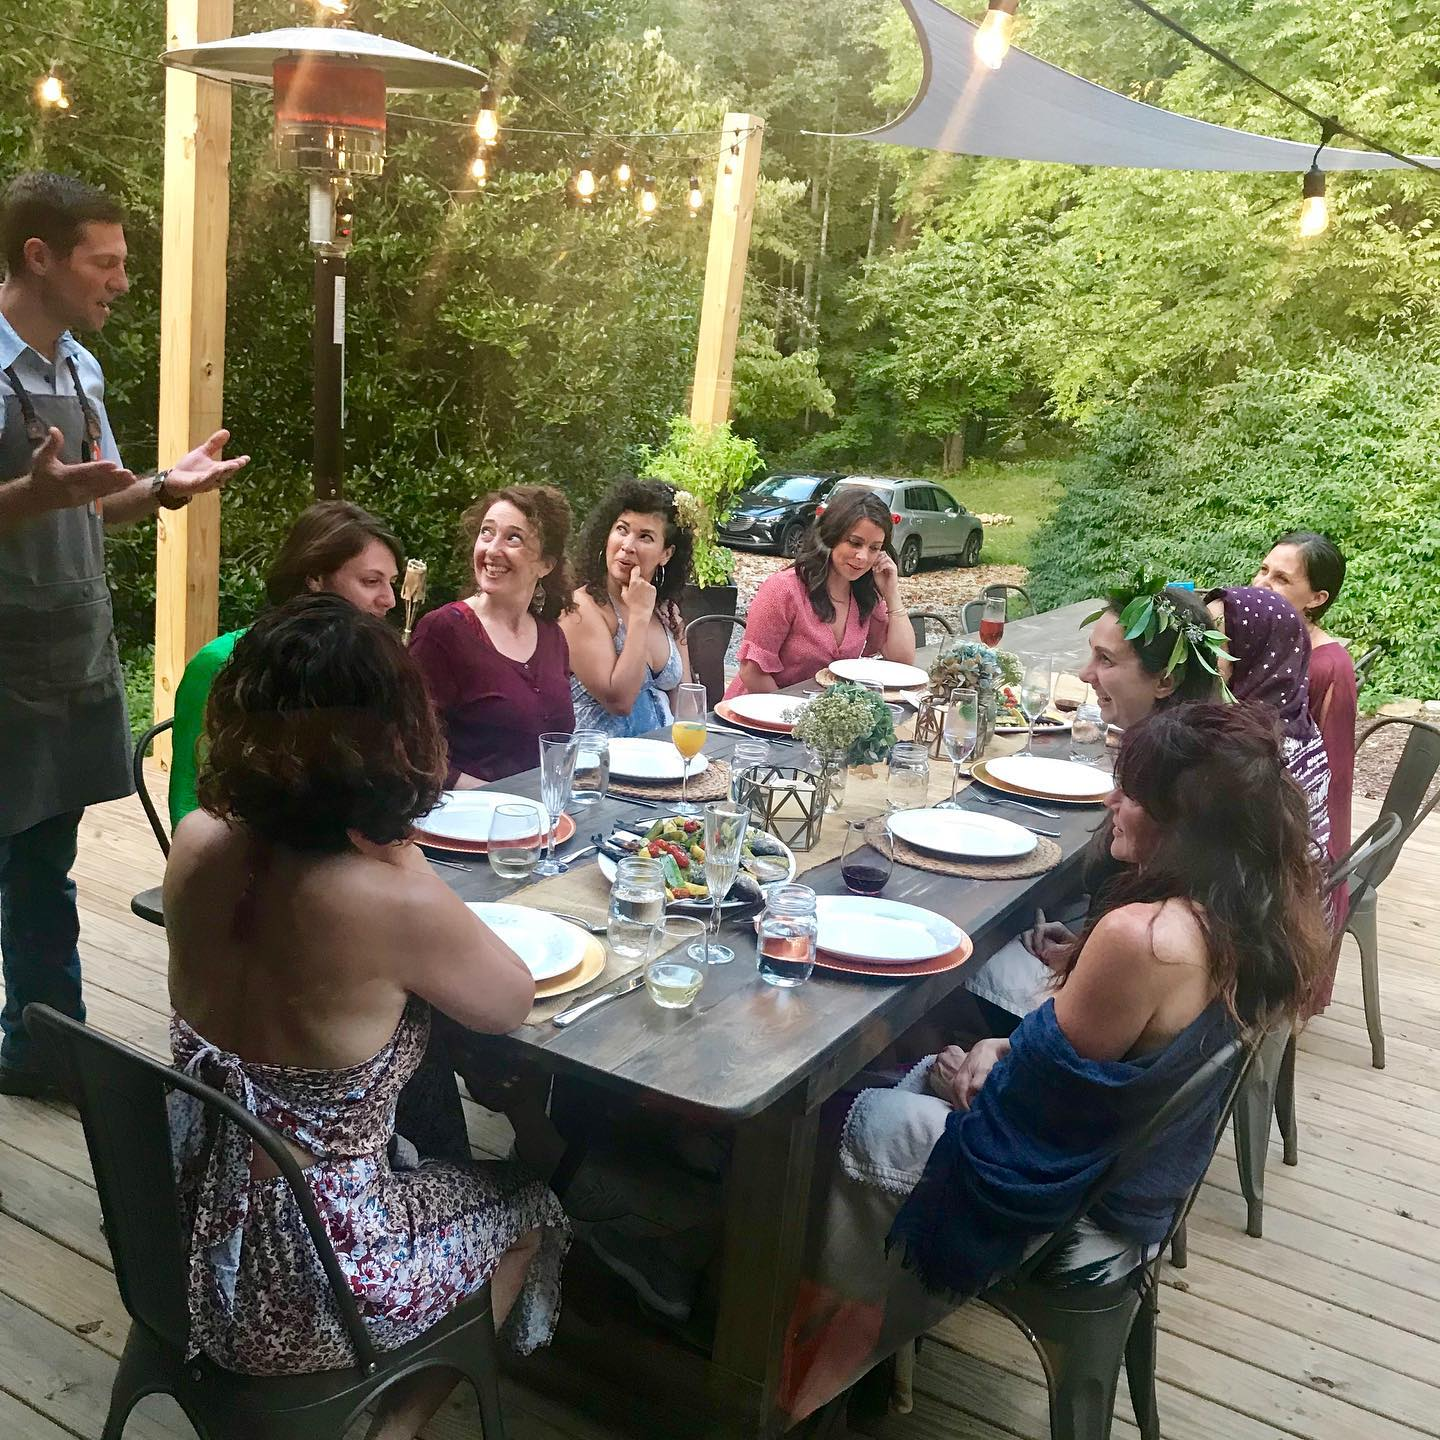 Meals at Bliss Farm and Retreat are nourishing and beautiful featuring organic, local foods.